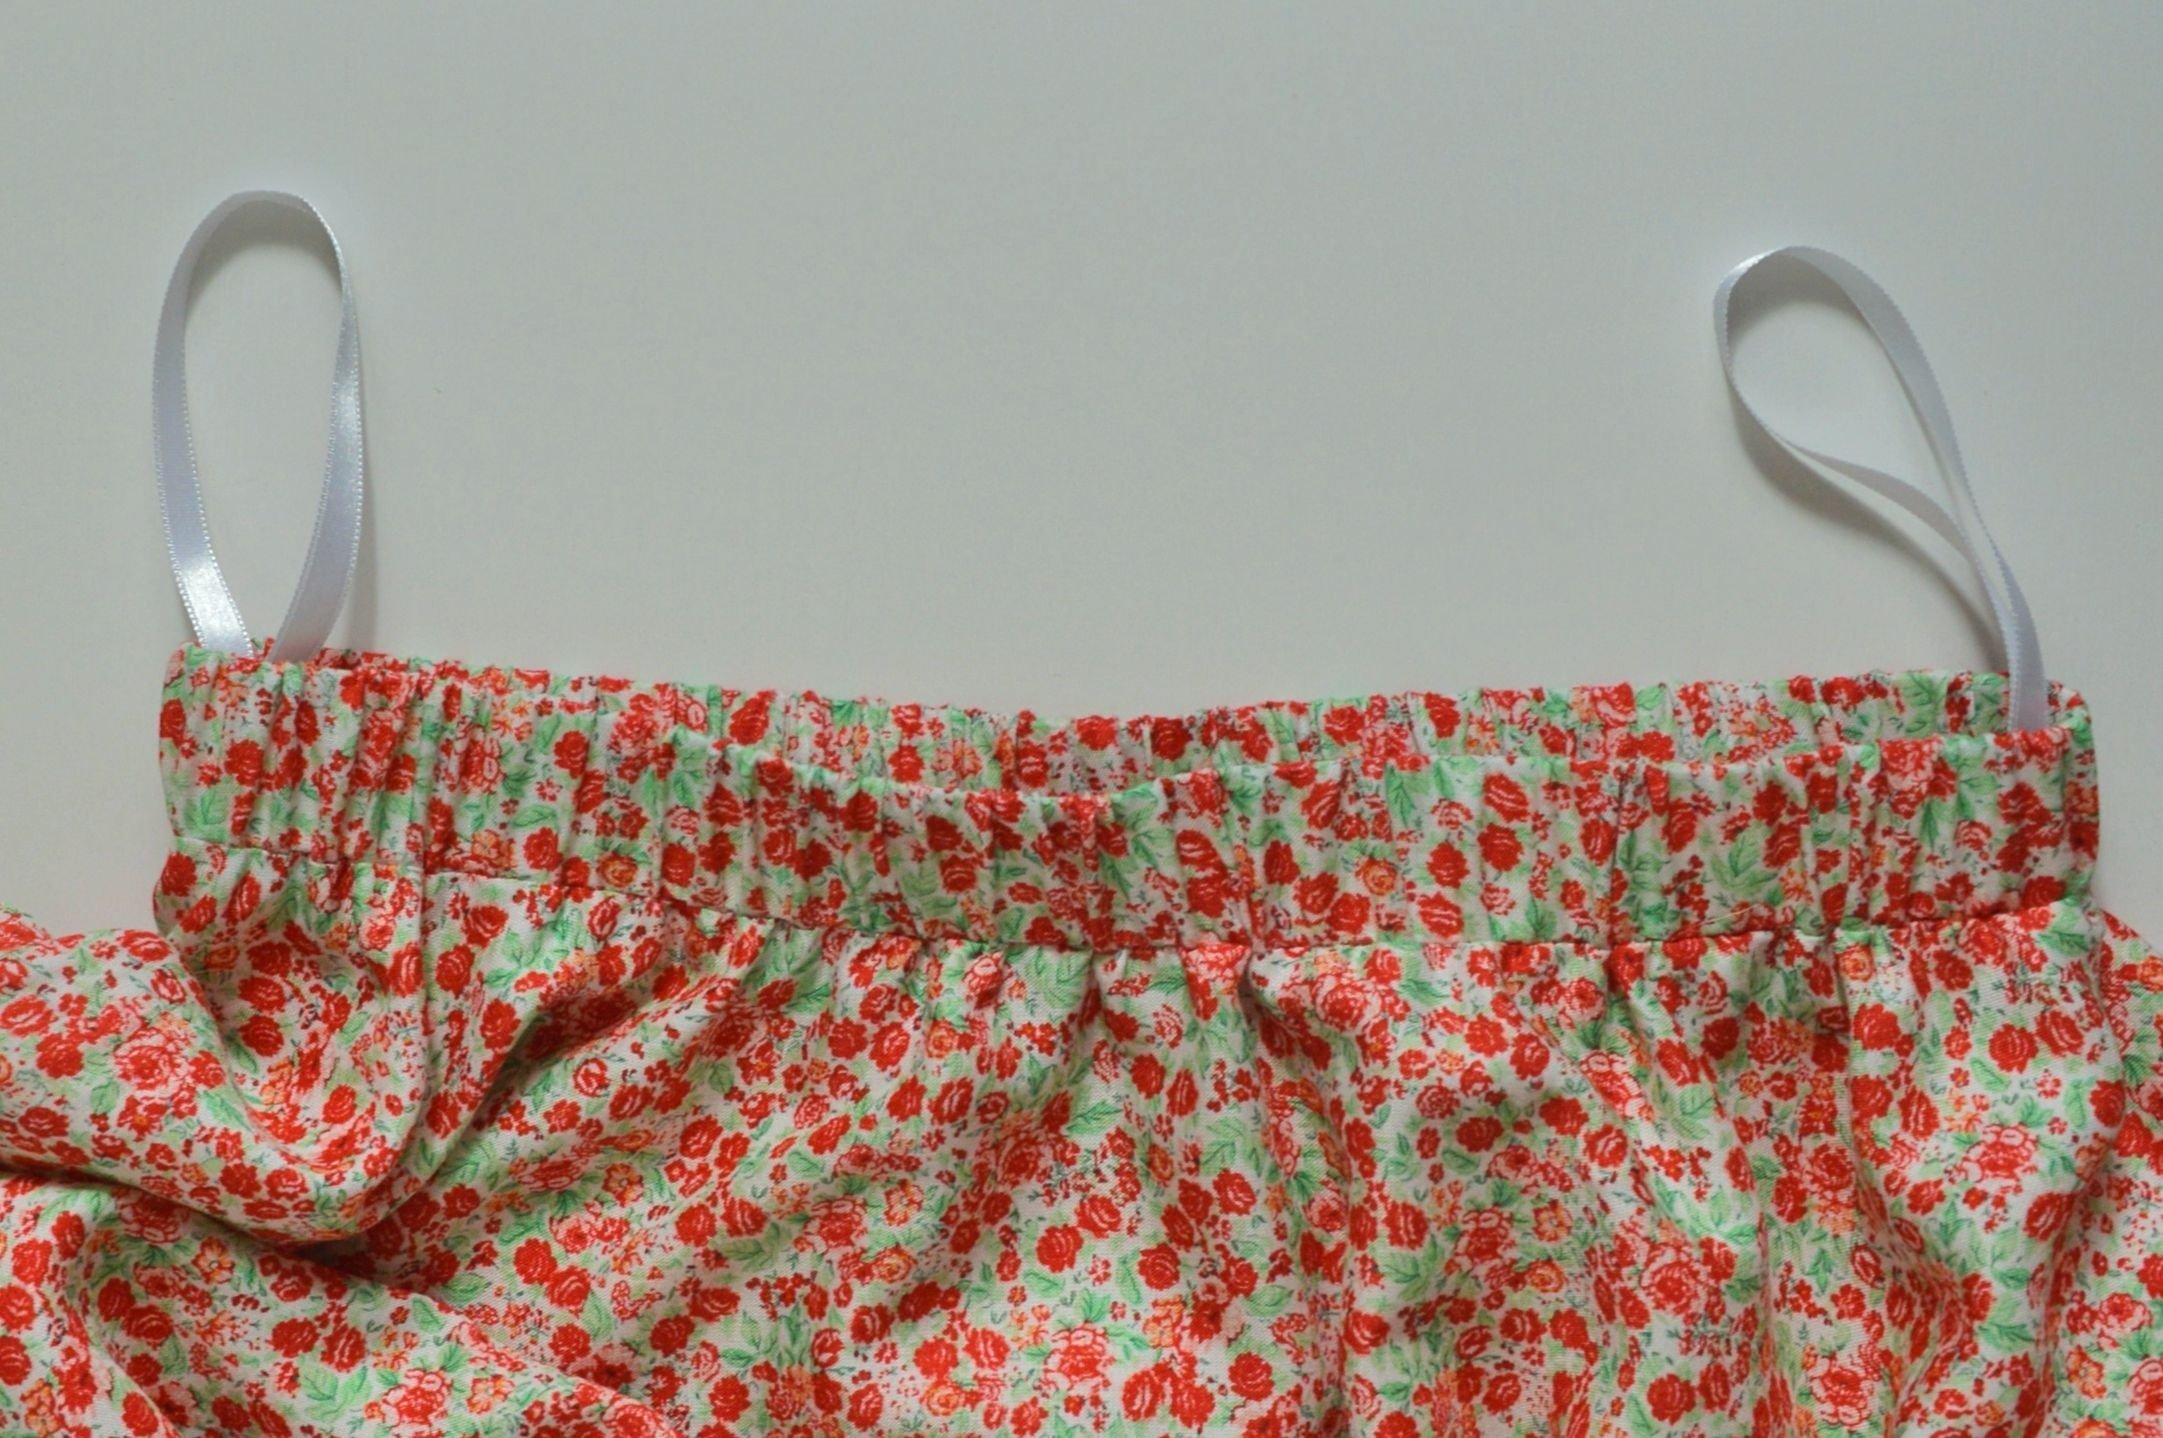 How To Sew A Simple Half Circle Skirt Without A Zipper Beginner S Sewing Tutorial